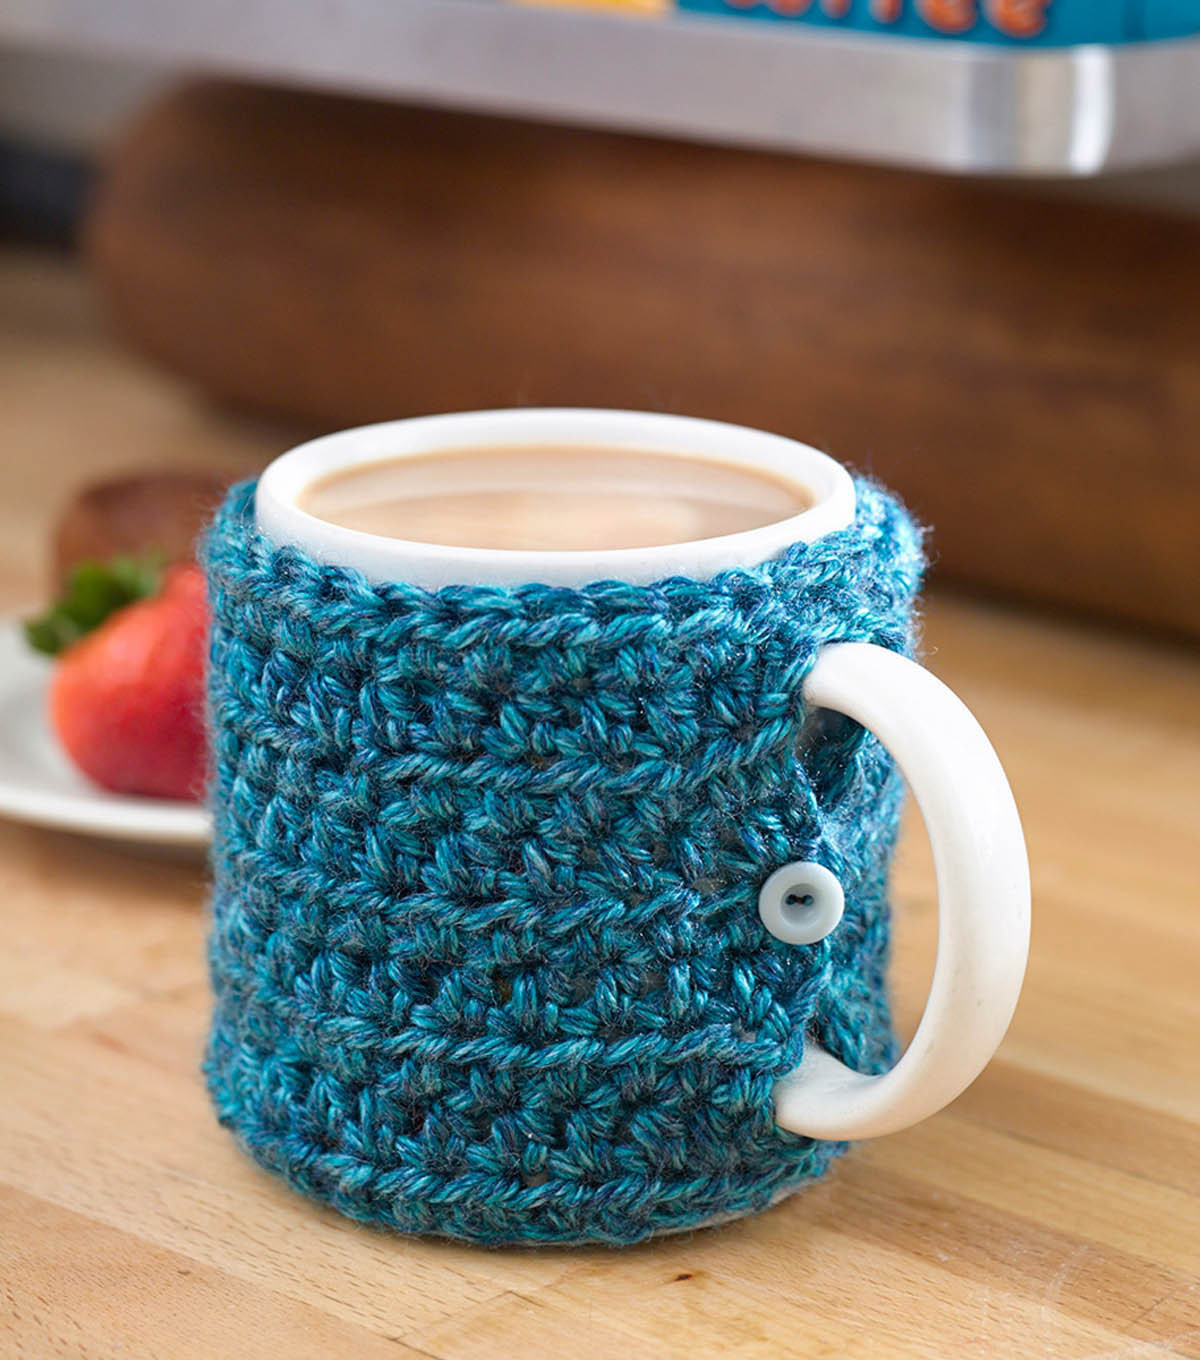 Crochet Coffee Cup Cozy Best Of Craftdrawer Crafts Free Easy to Crochet Mug Cozy Patterns Of Crochet Coffee Cup Cozy New Crochet Tea Cozy Coffee Cup Sleeve Coffee Sleeve Mug Cozy